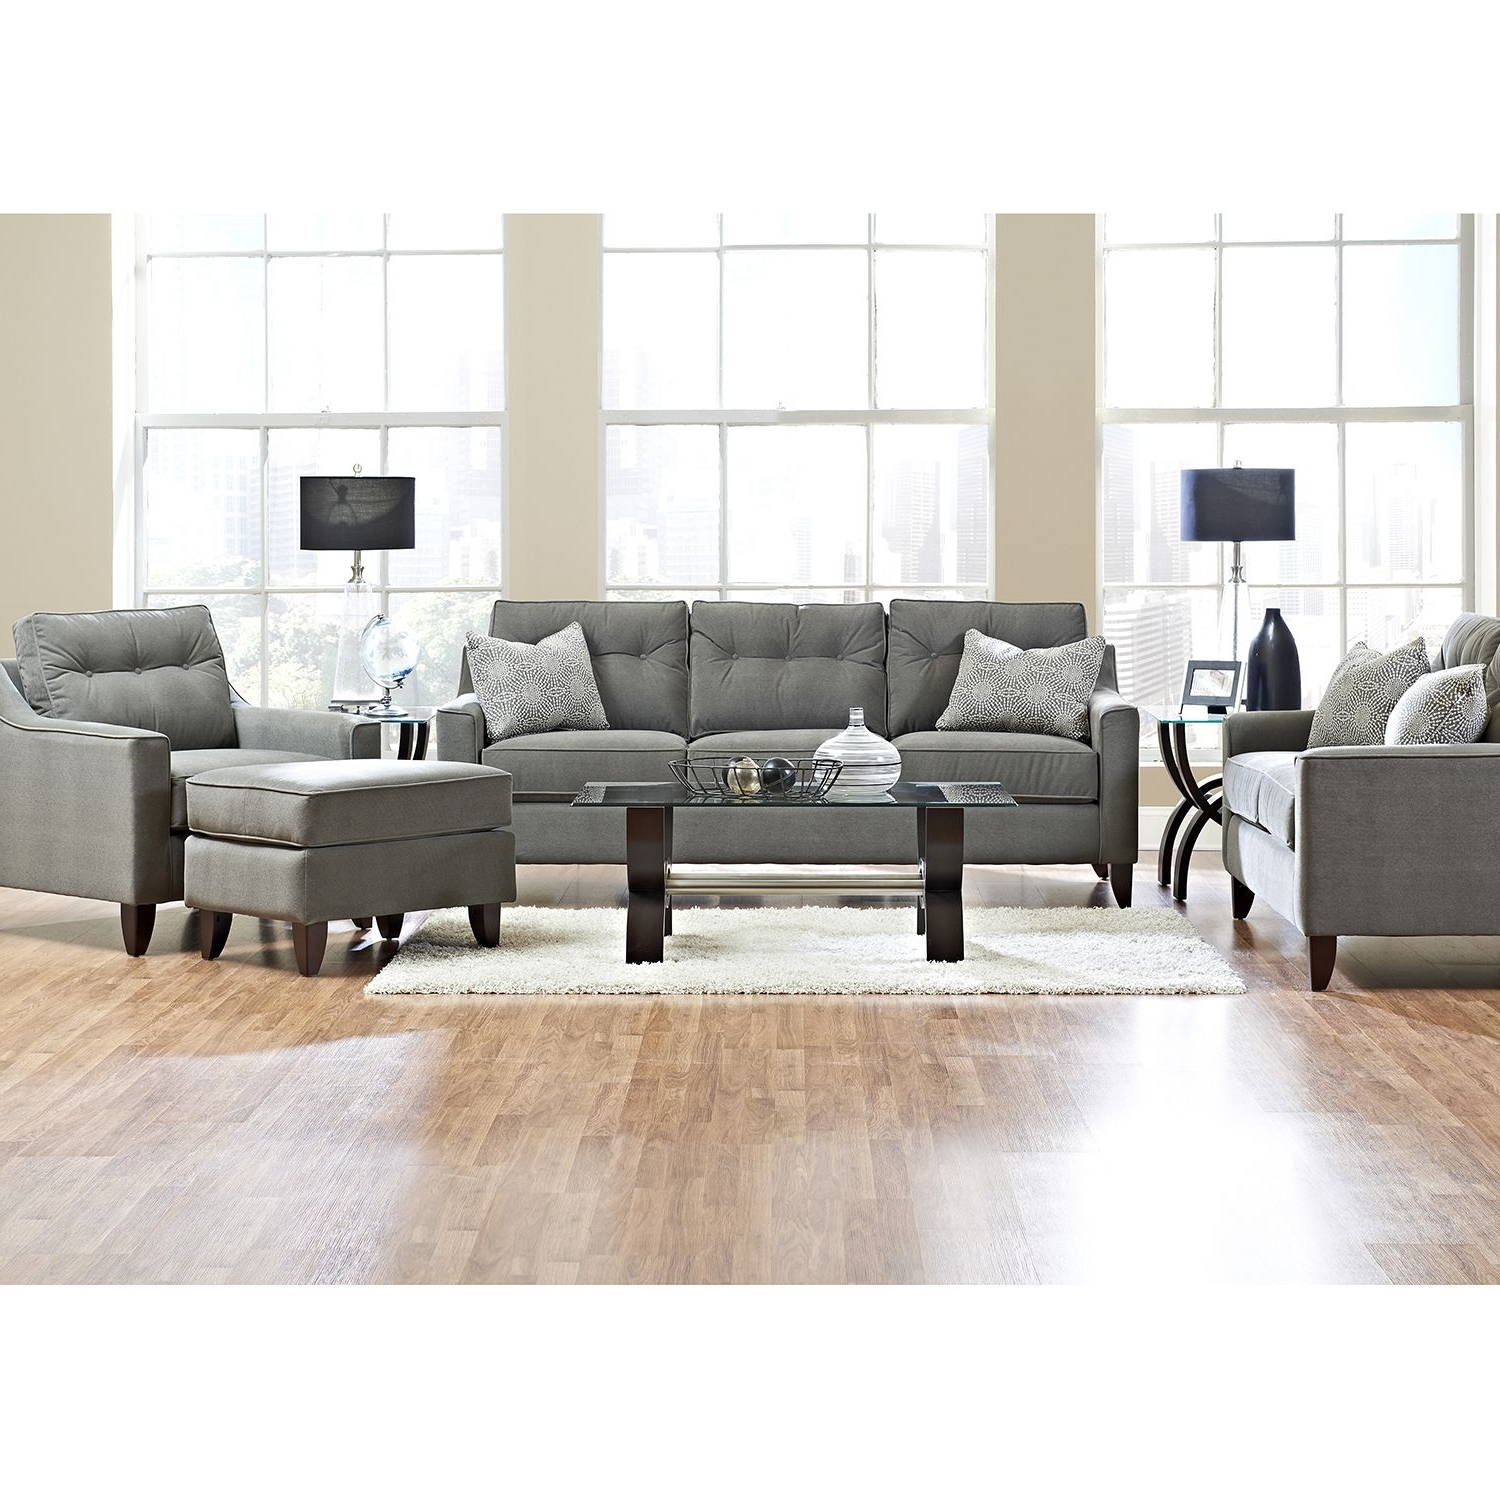 Best And Newest Prestige Aaron Sofa, Loveseat, Chair And Ottoman Collection For Sectional Sofas At Aarons (View 8 of 15)